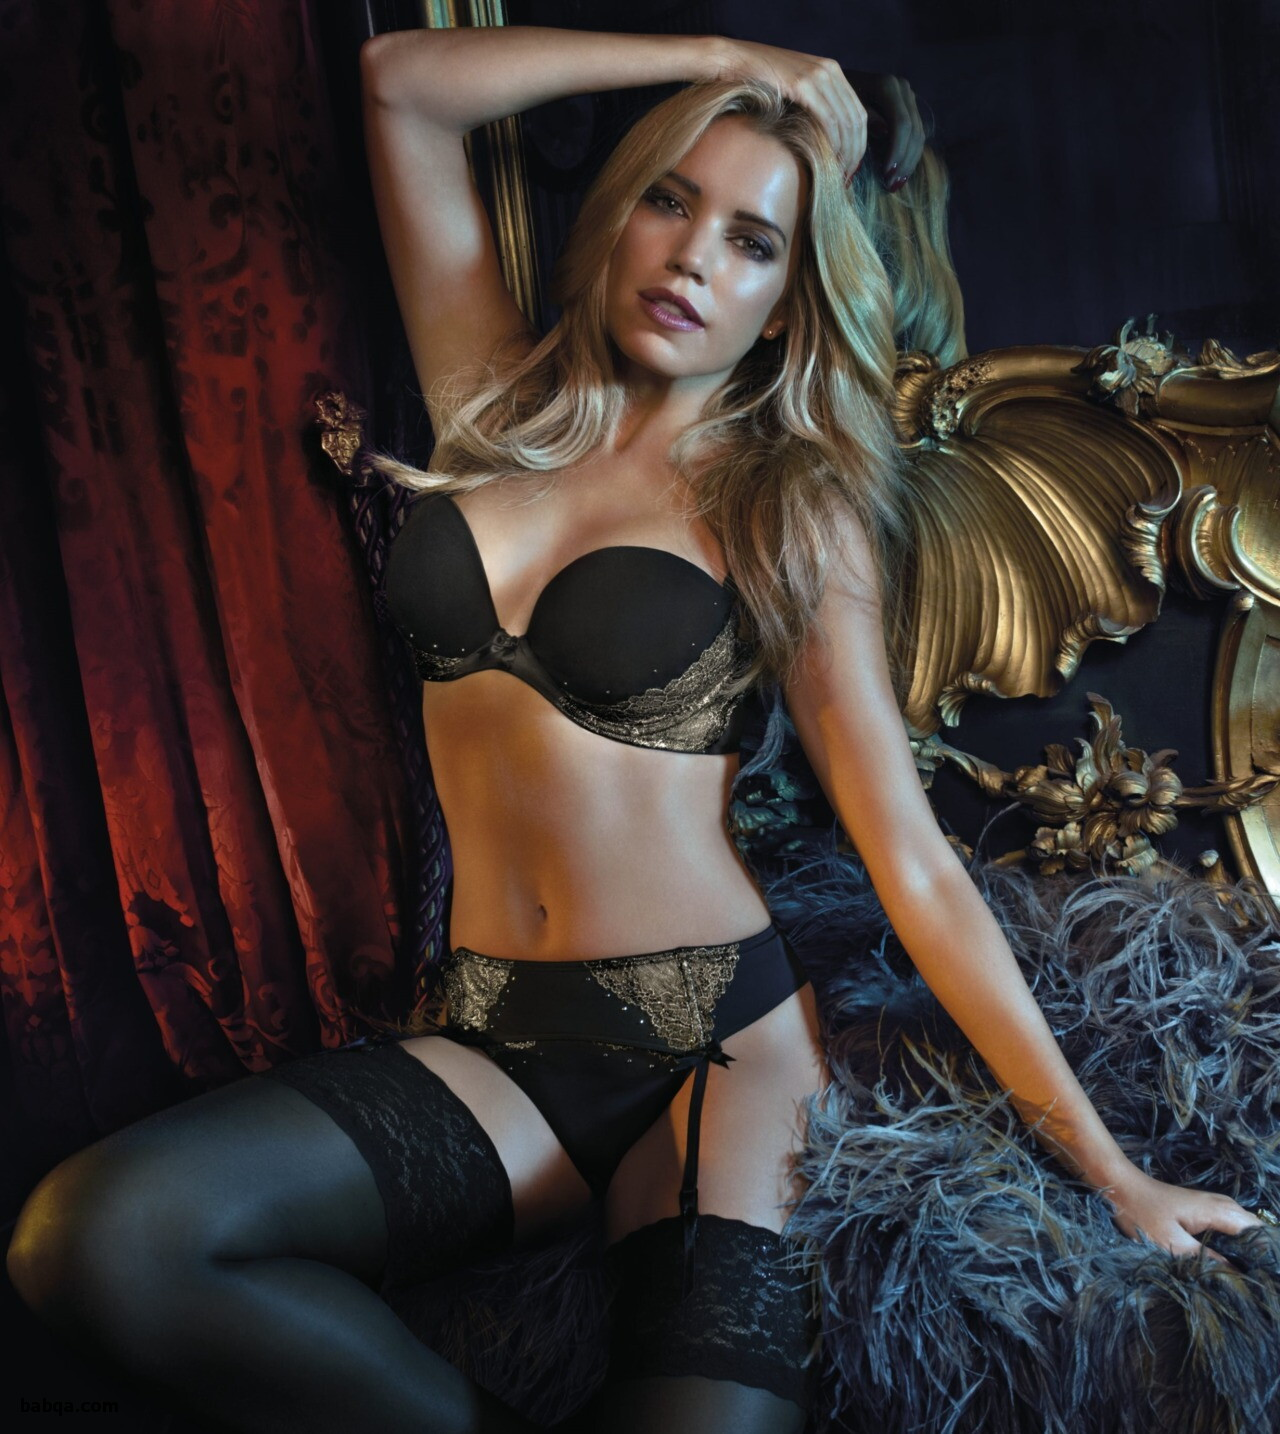 women in stockings images and best lingerie london